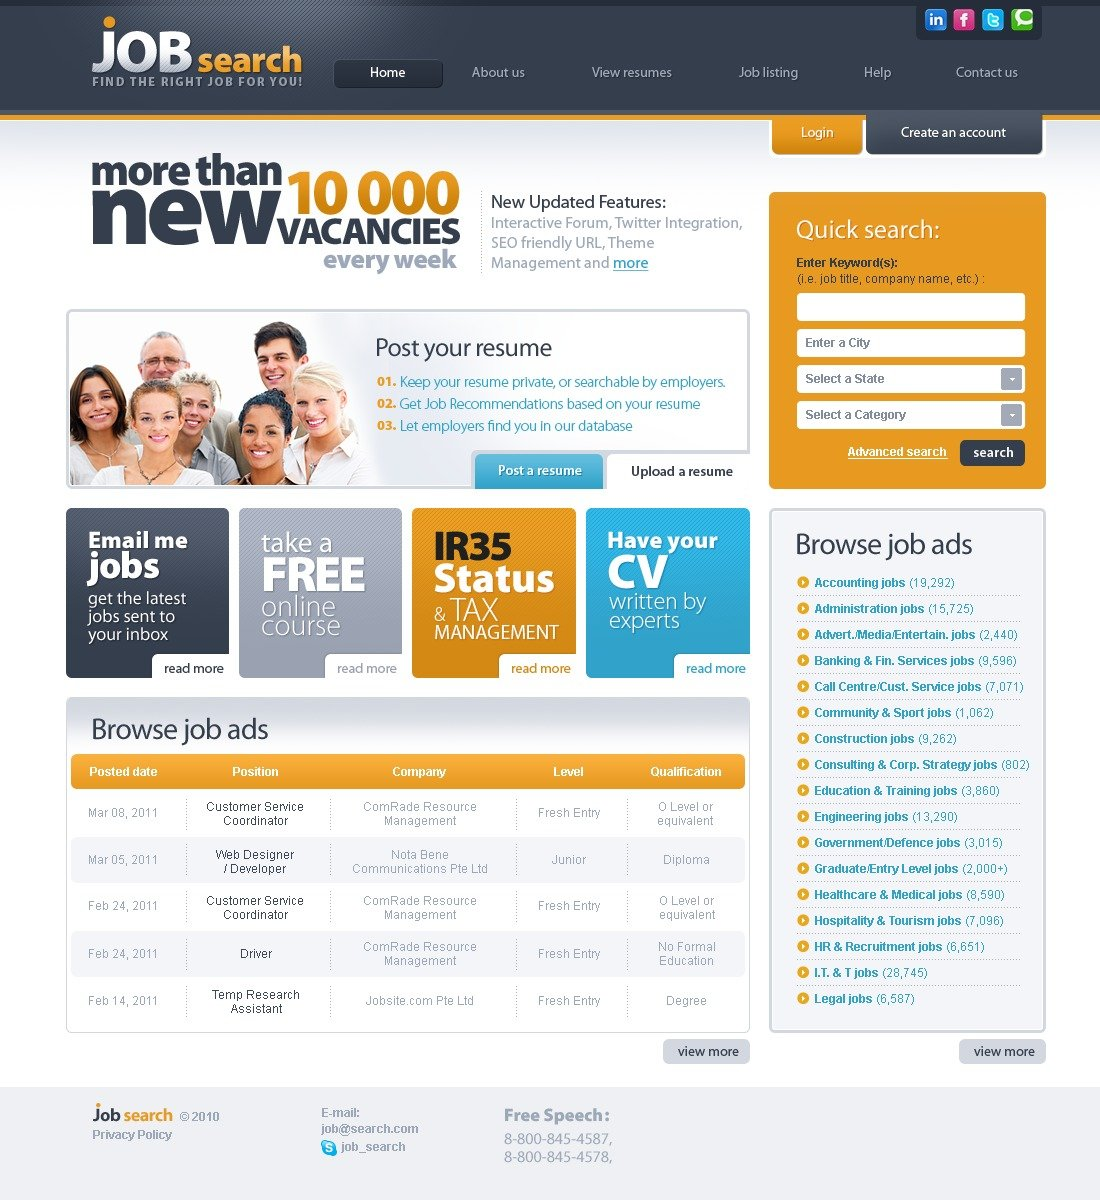 The Job Search PSD Design 54193, one of the best PSD templates of its kind (business, portal, most popular, wide, jquery), also known as job search PSD template, finder PSD template, bank portal career company PSD template, opportunities PSD template, find PSD template, resume PSD template, candidate PSD template, freelance PSD template, profile PSD template, testimonials PSD template, work PSD template, team PSD template, standard PSD template, principles PSD template, private public management PSD template, support PSD template, services PSD template, vacancy PSD template, employment PSD template, labor PSD template, registry PSD template, office PSD template, searching and related with job search, finder, bank portal career company, opportunities, find, resume, candidate, freelance, profile, testimonials, work, team, standard, principles, private public management, support, services, vacancy, employment, labor, registry, office, searching, etc.